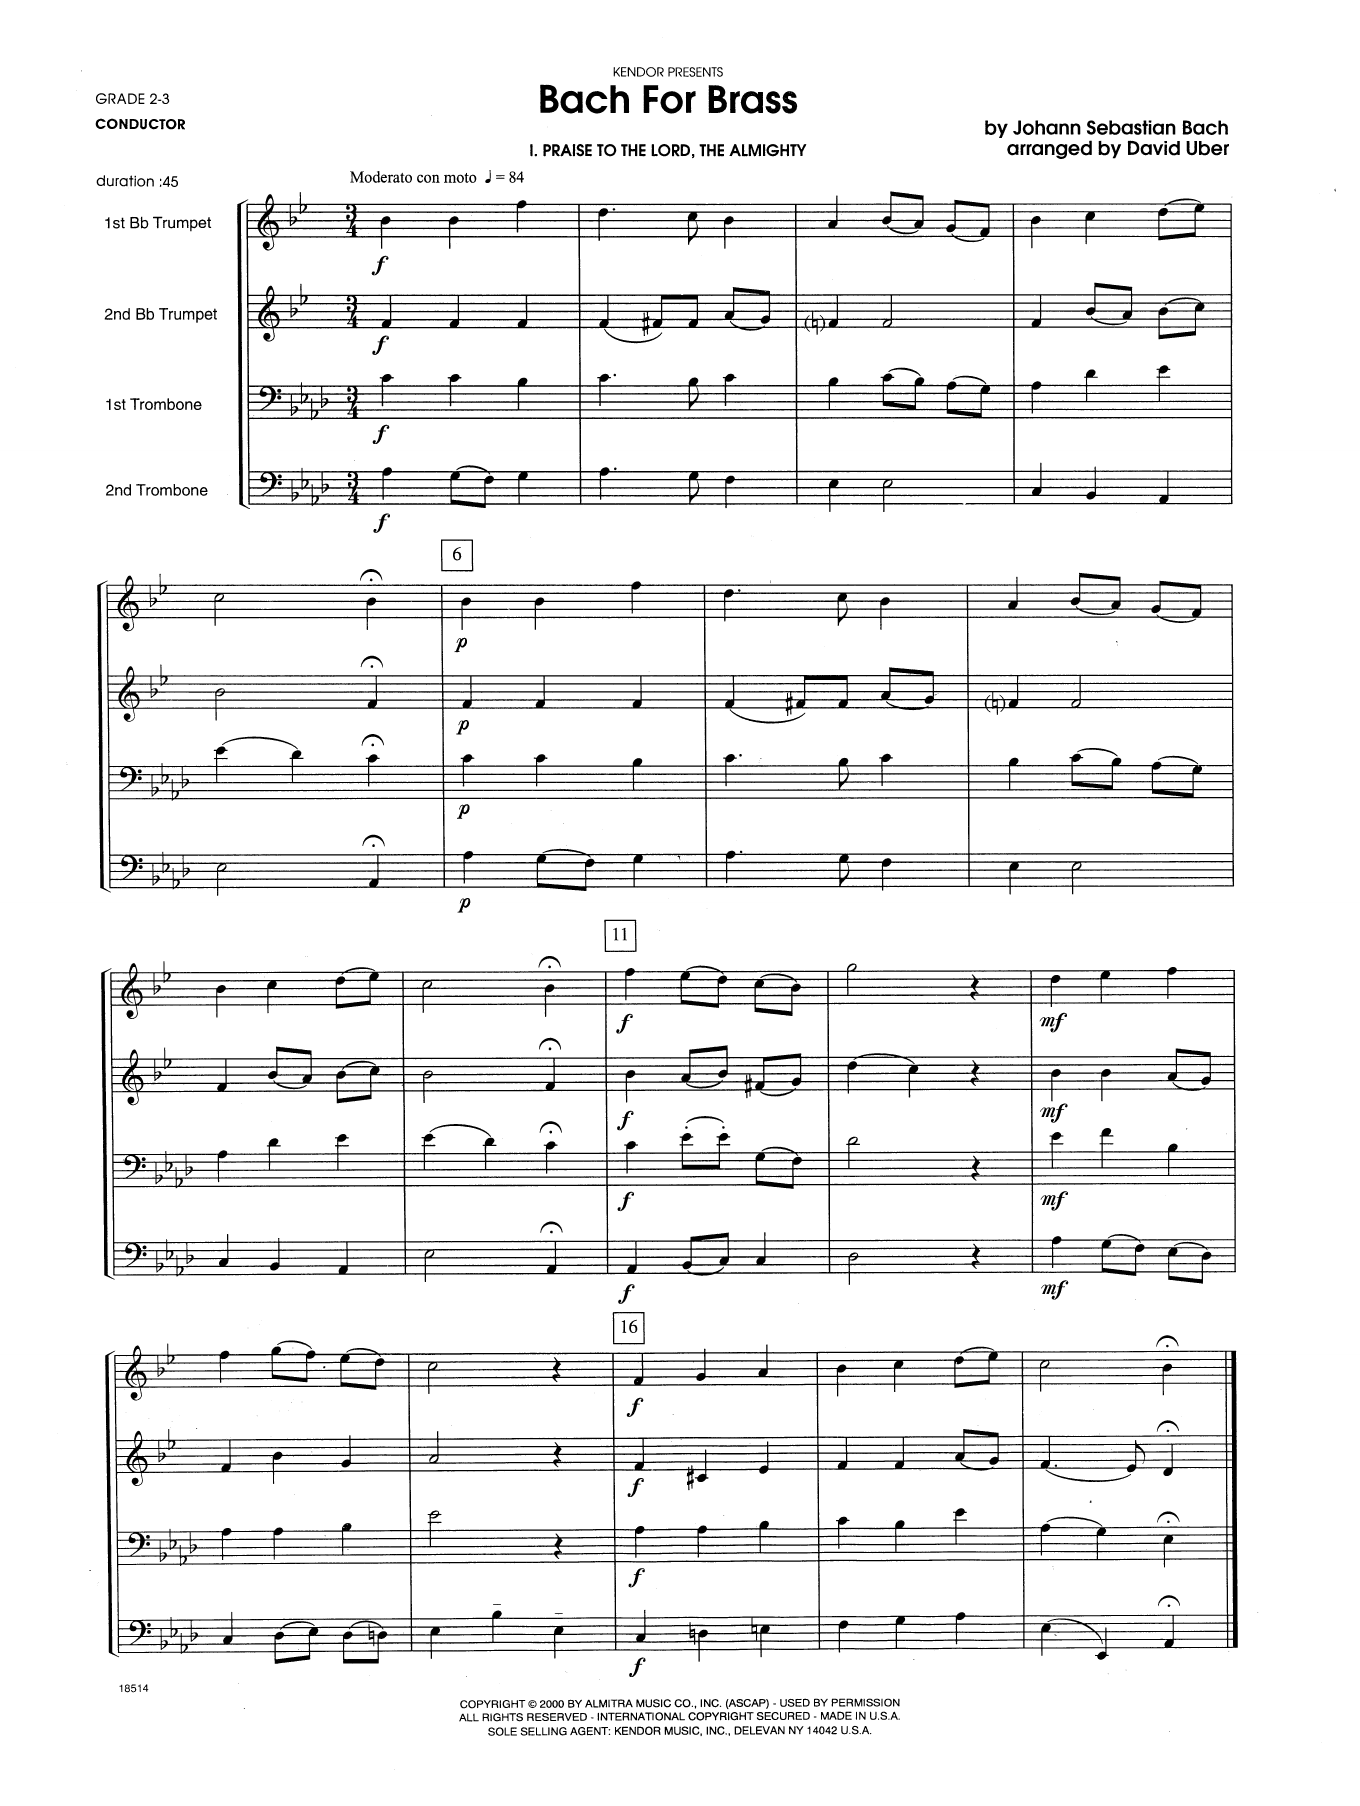 Bach For Brass (COMPLETE) sheet music for brass quartet by Johann Sebastian Bach and David Uber. Score Image Preview.